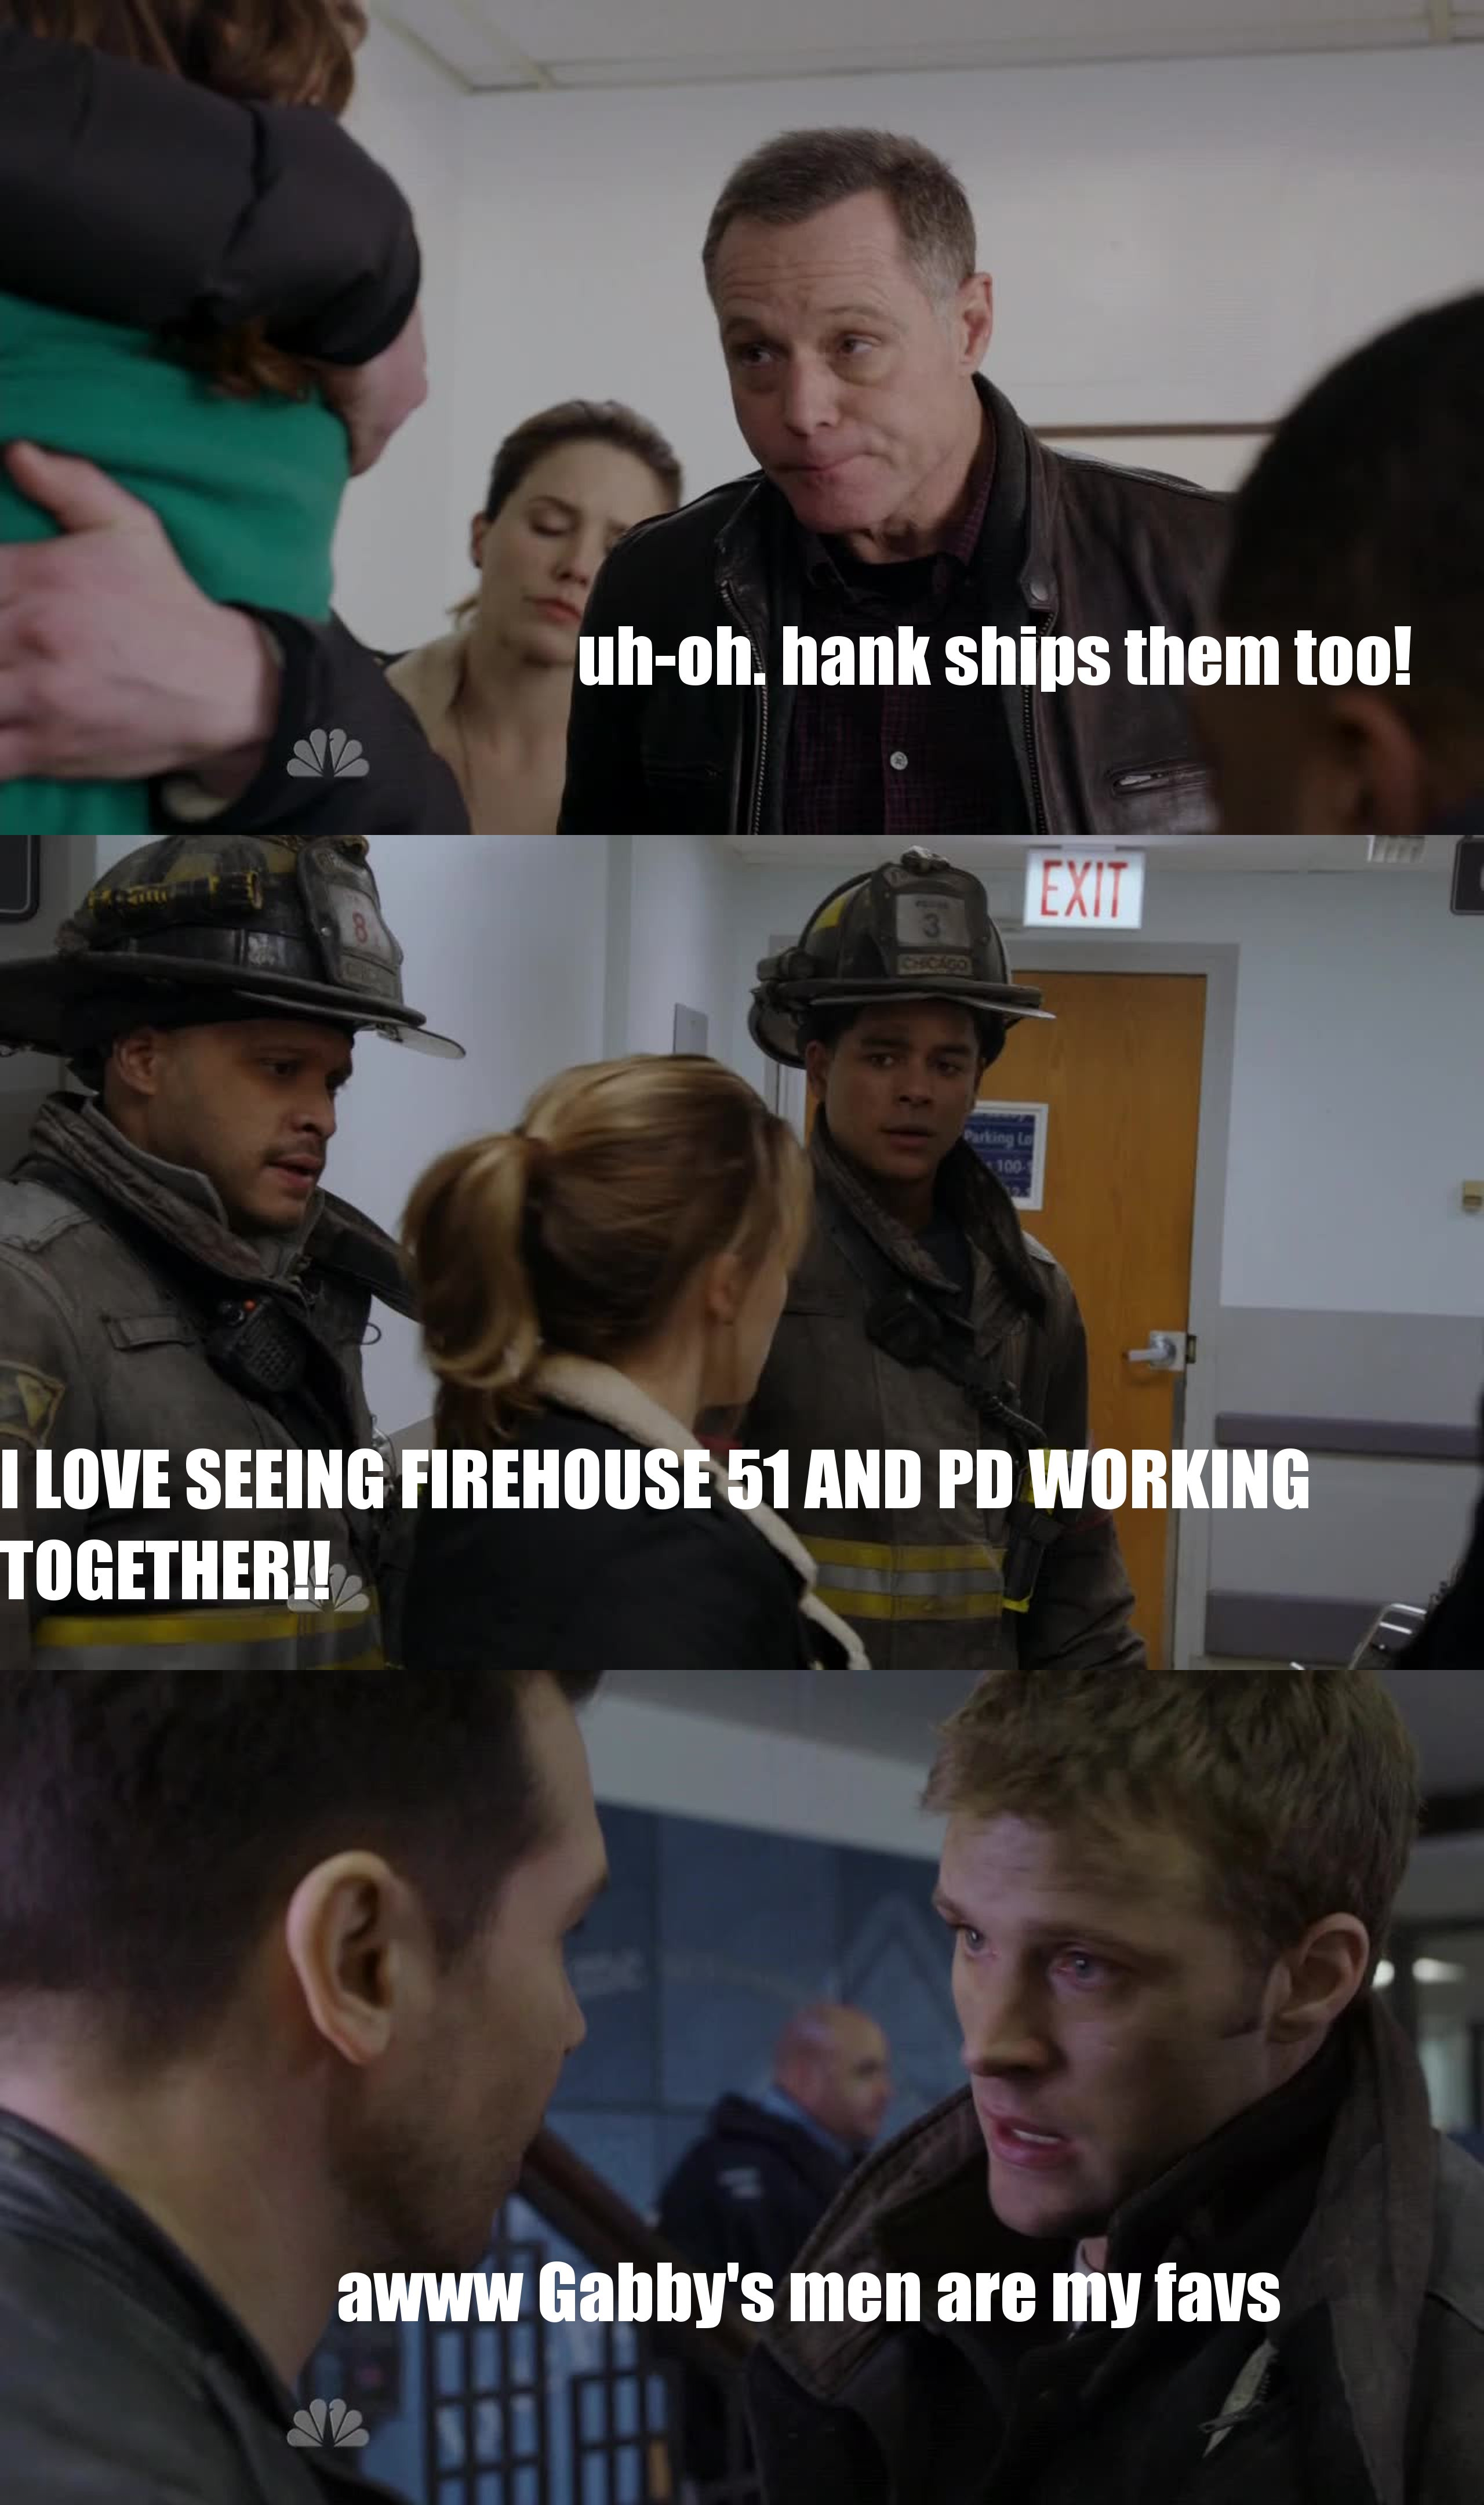 incredible episode! i love chicago fire & PD crossovers!